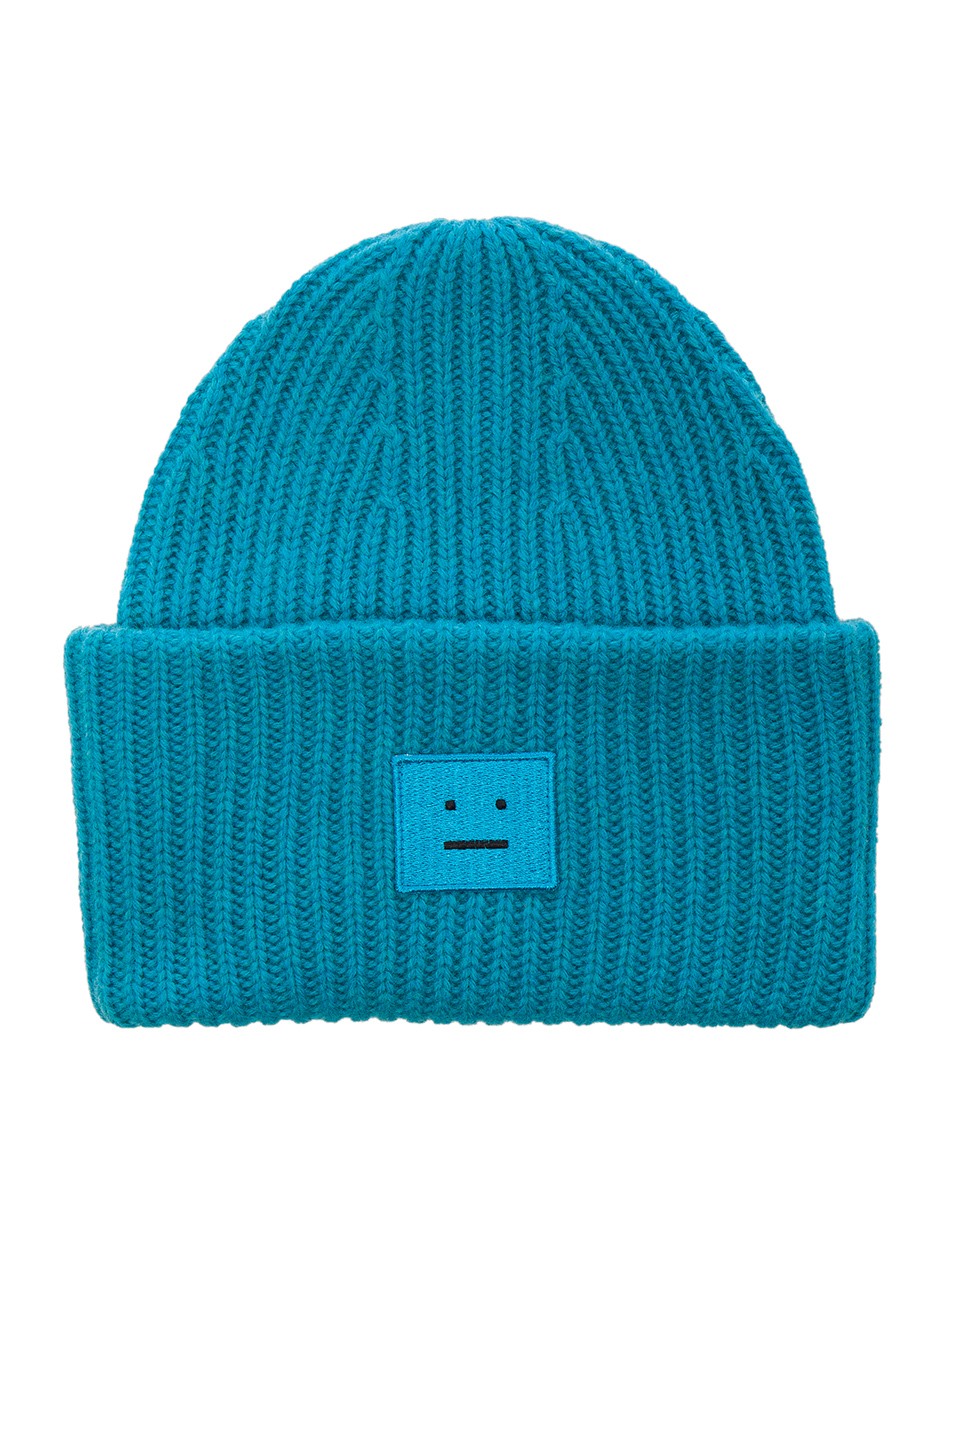 Acne Studios Pansy Beanie in Blue